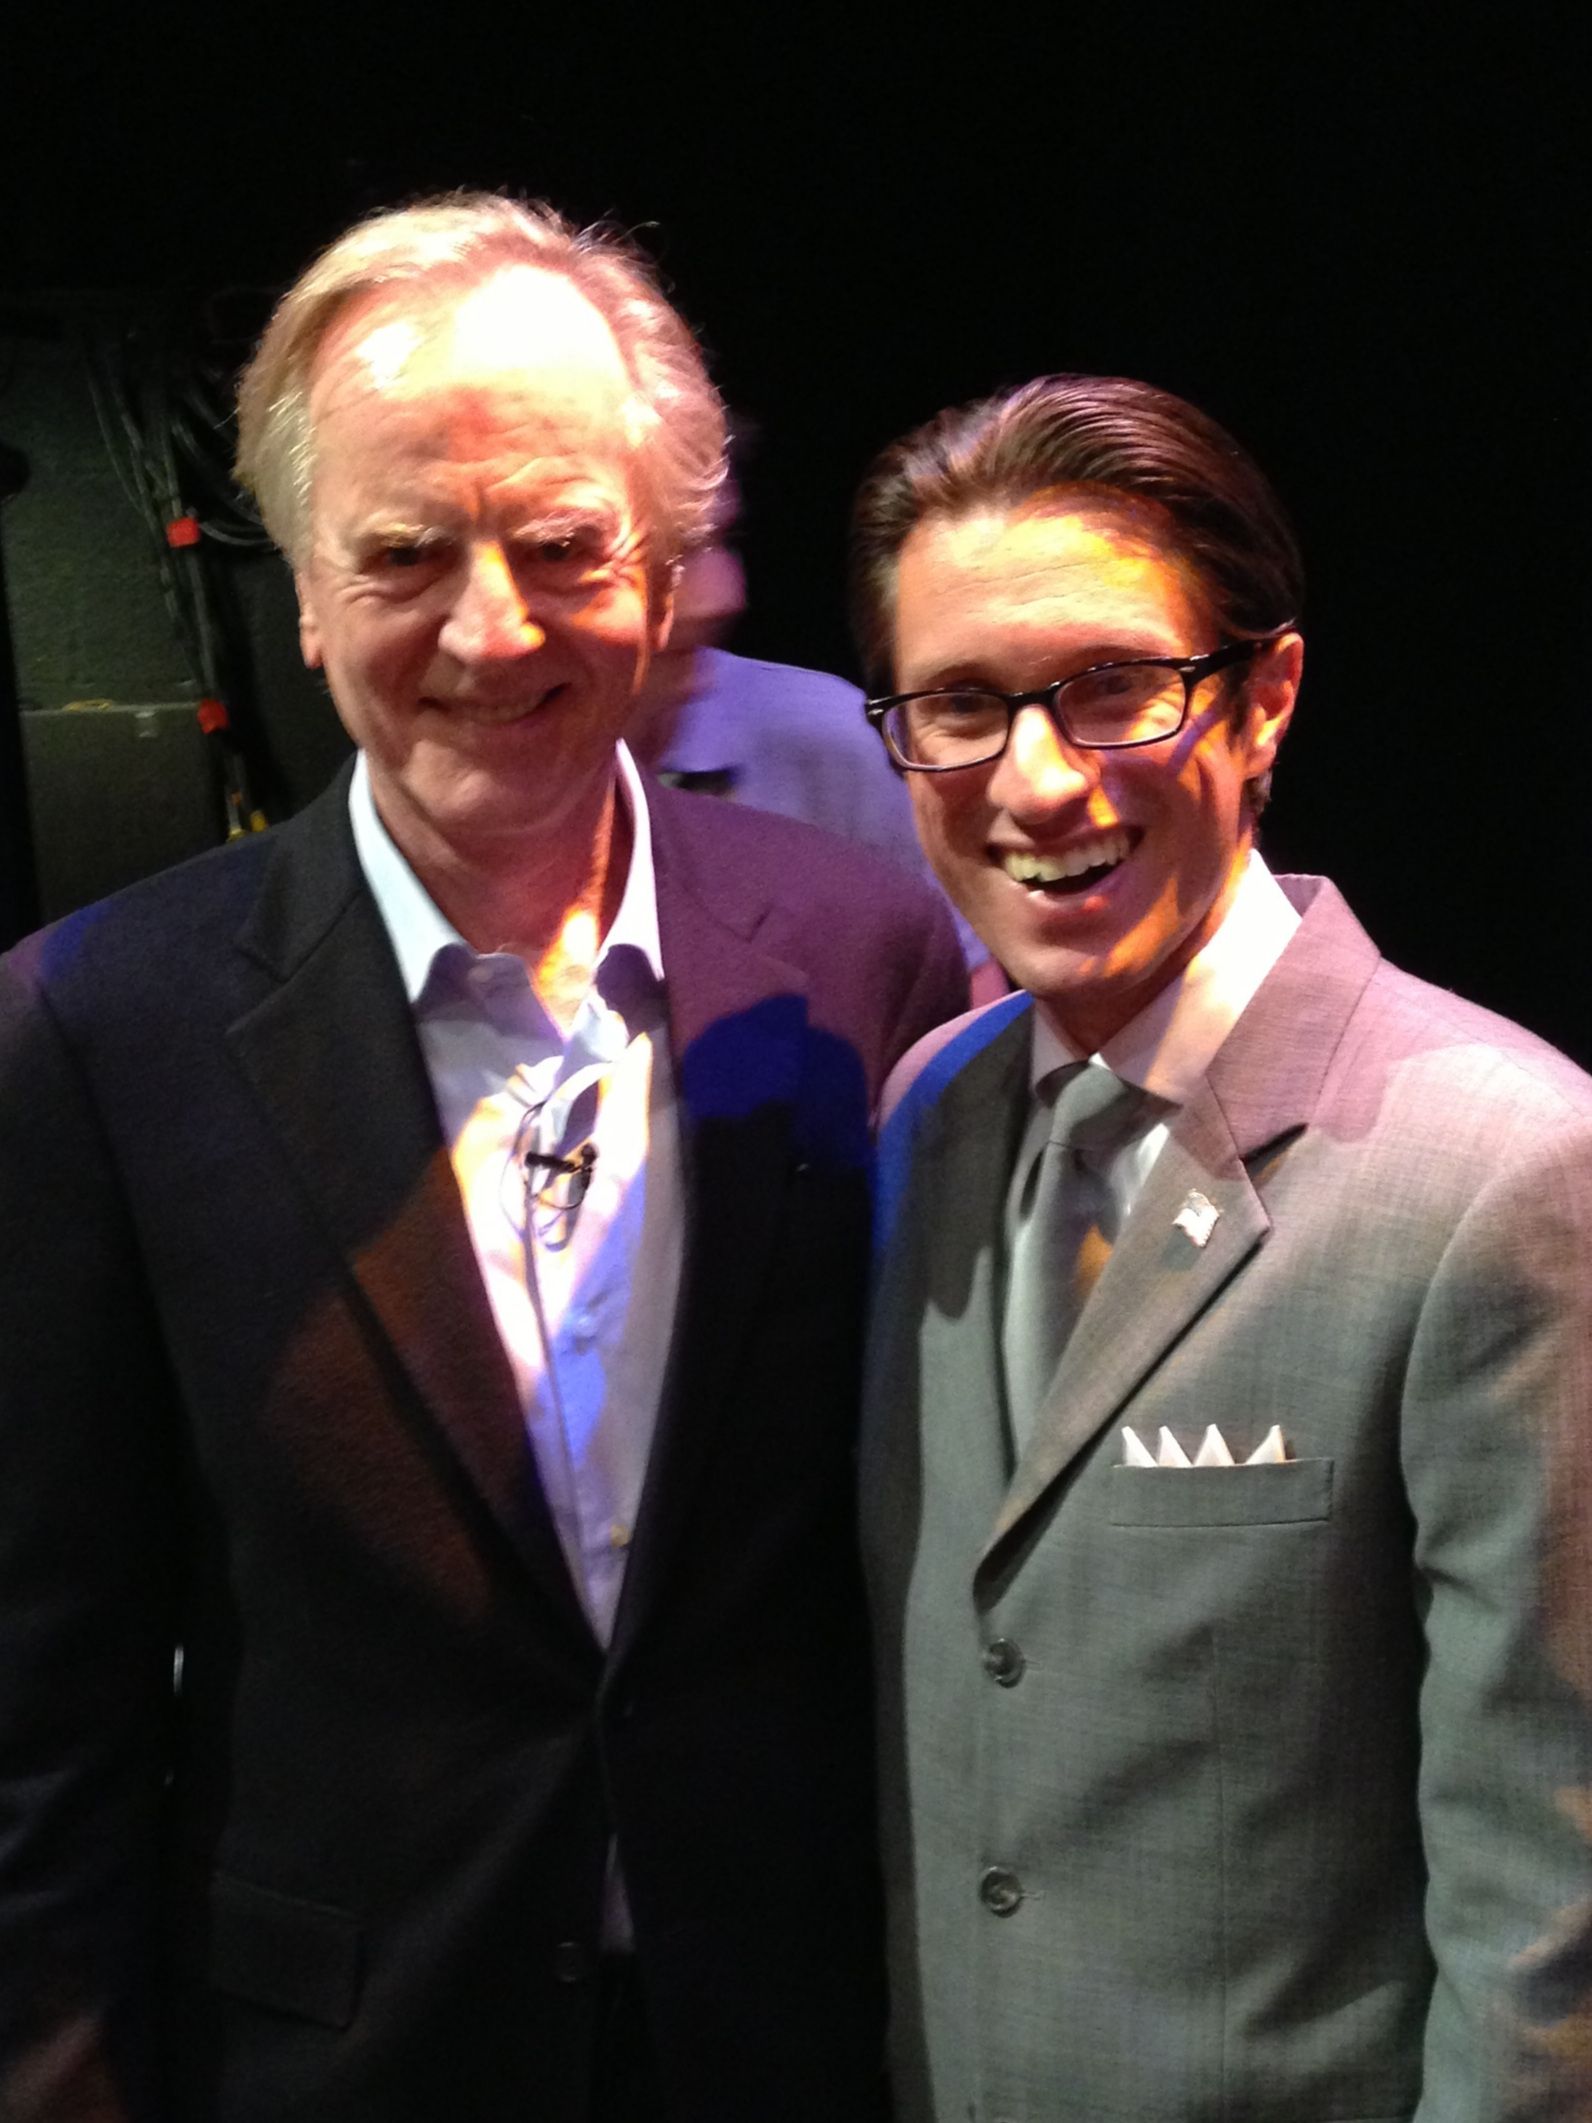 Dan Mangru and John Sculley - Former CEO of Apple and Pepsi